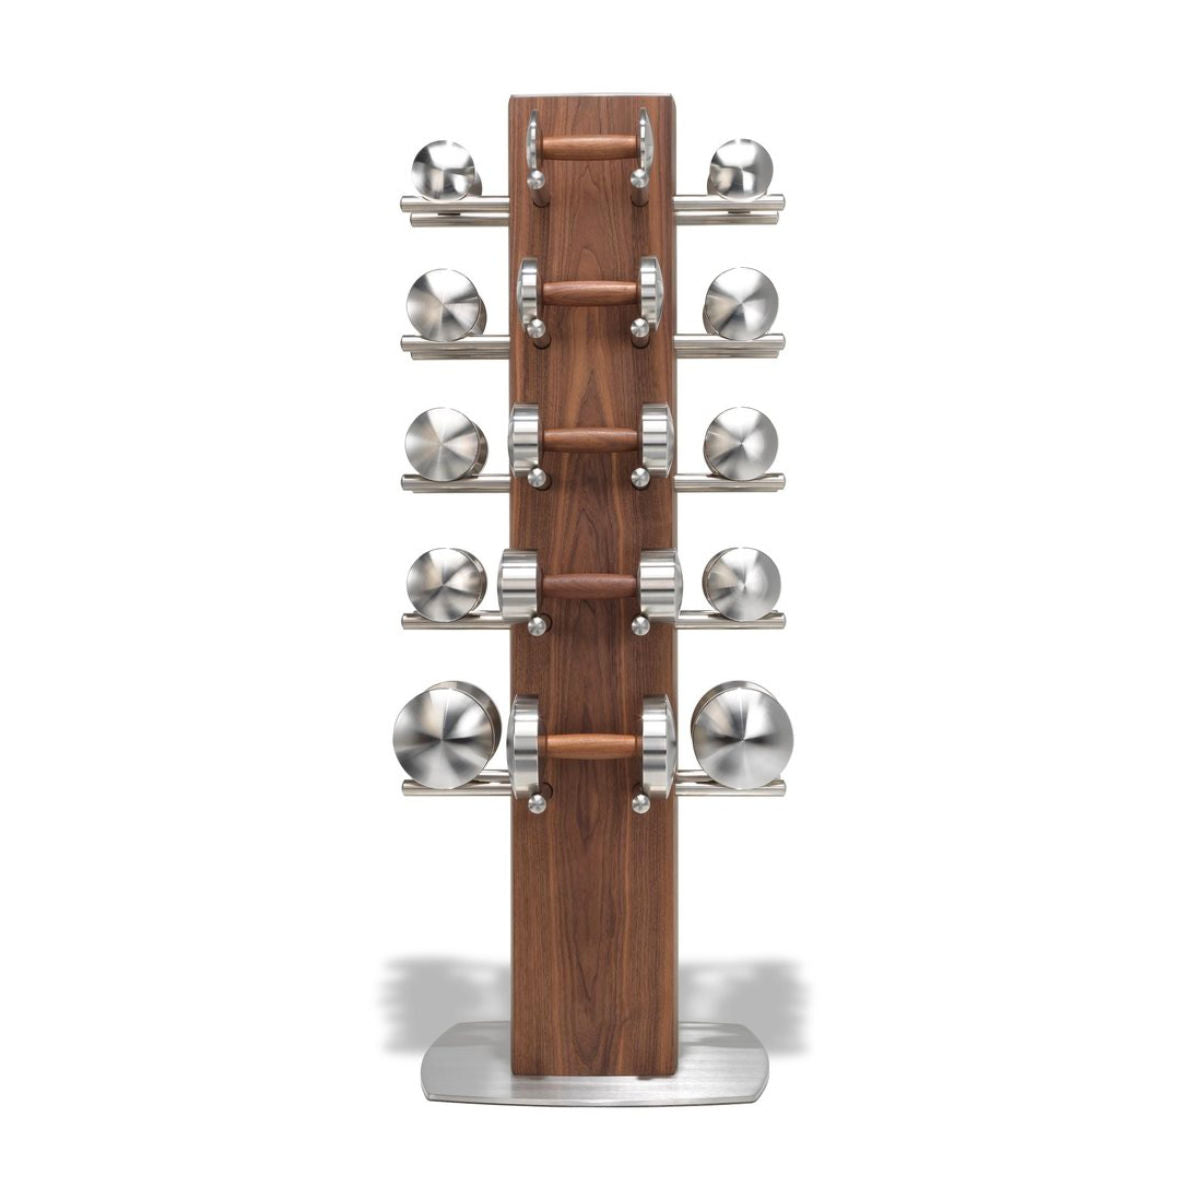 HOCK Design DISKUS SUPERTOWER luxury dumbells set, 1-12kg